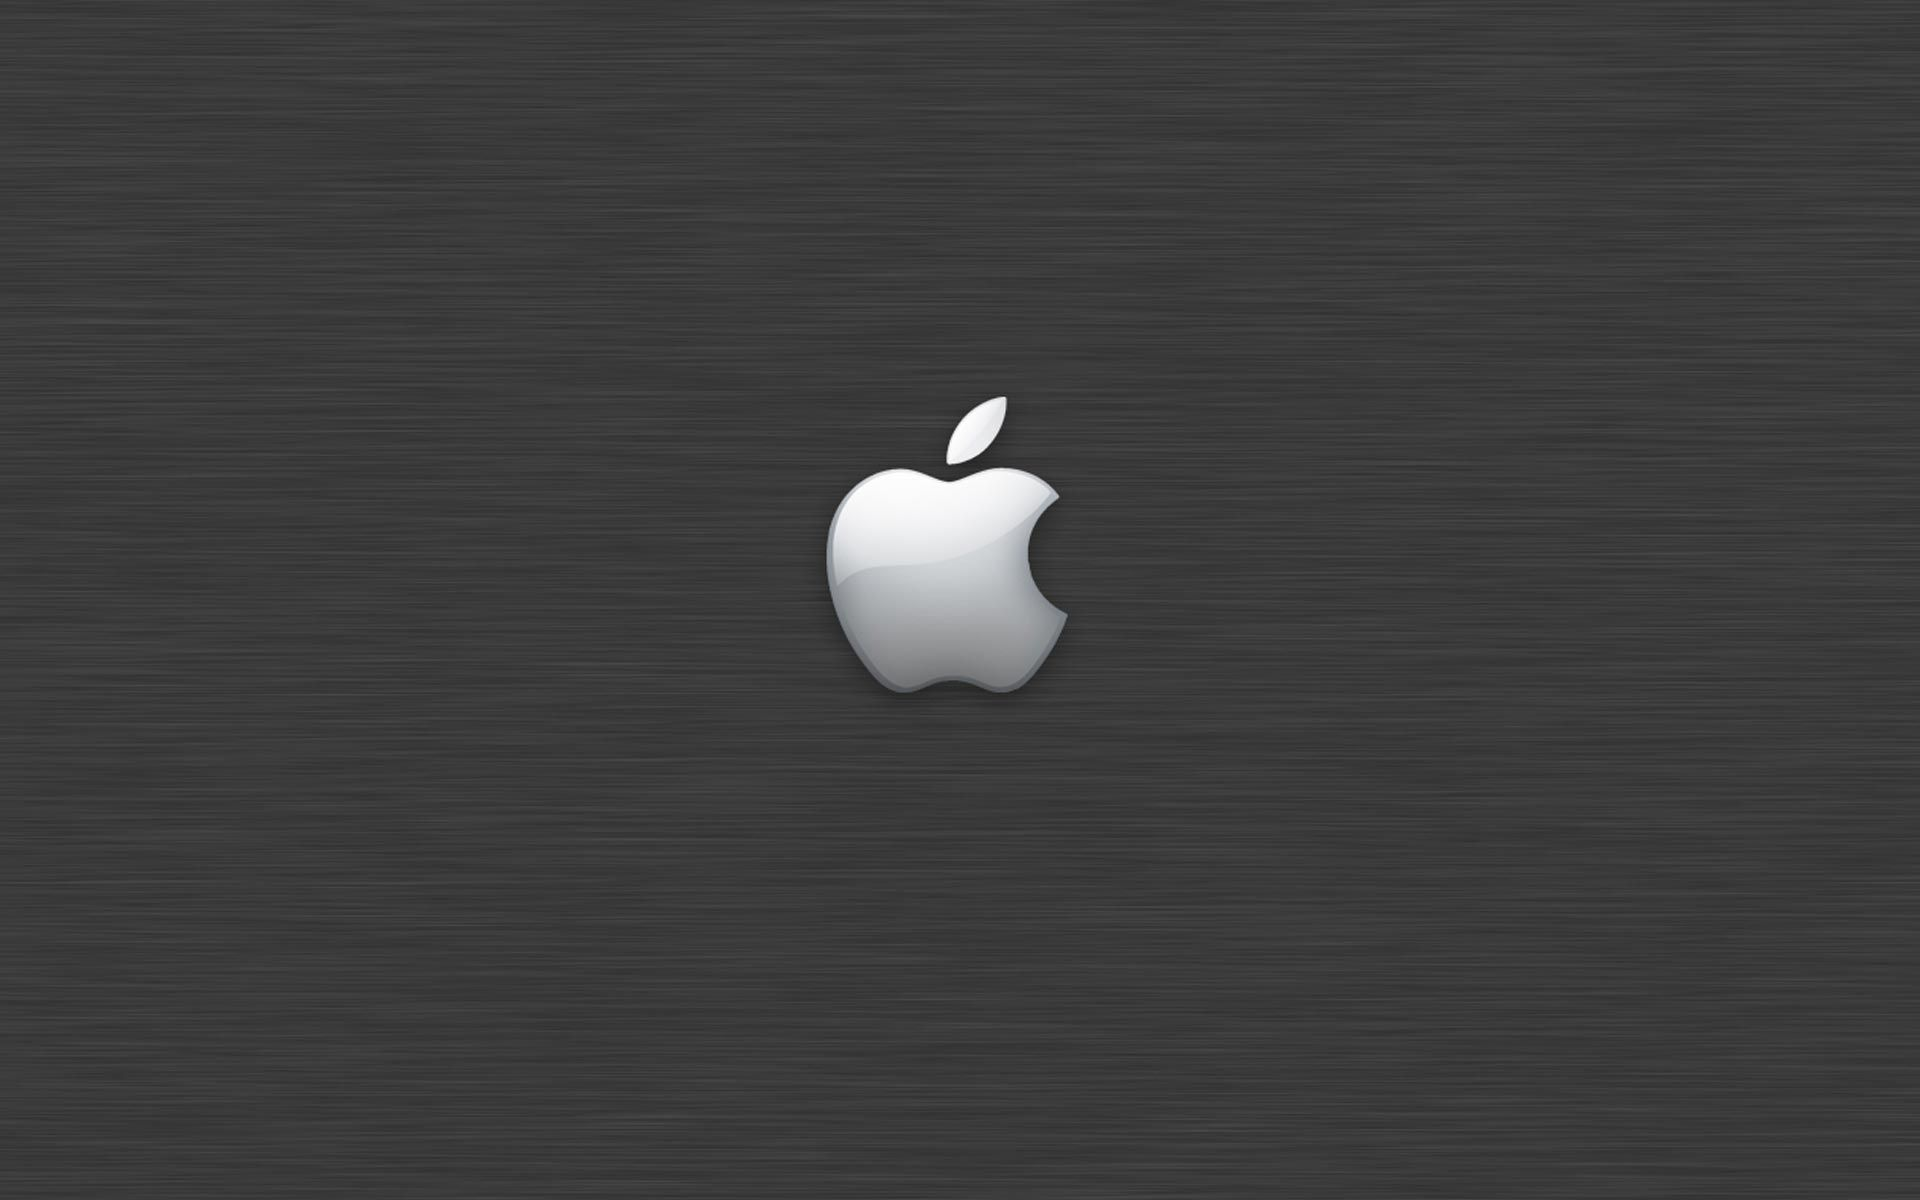 imac gray texture desktop wallpaper